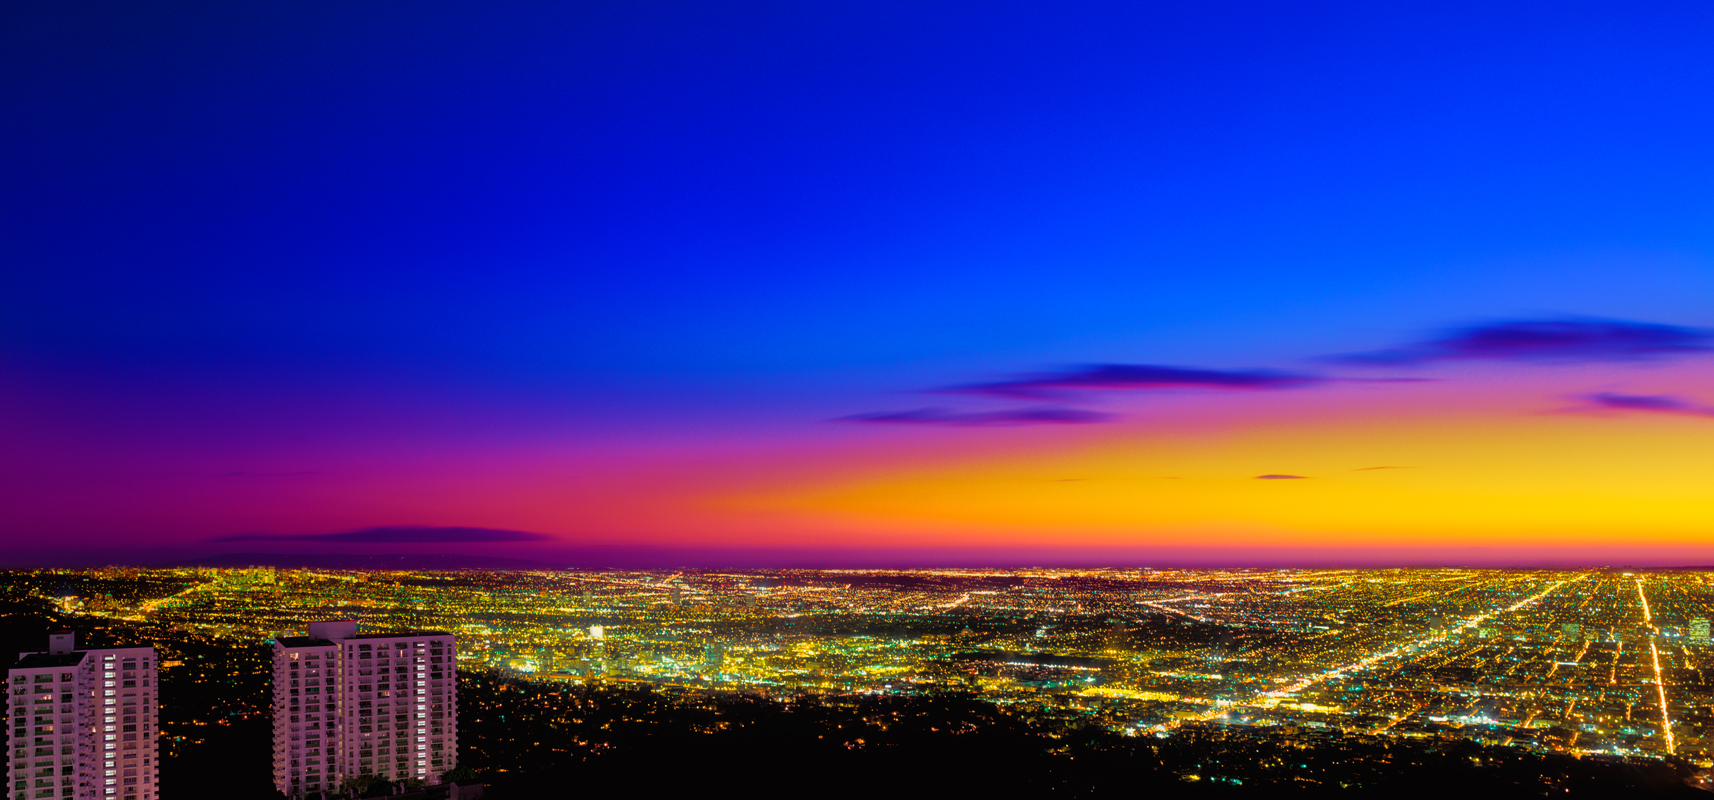 Hollywood Hills view of Los Angeles, Richard Lund, Translite Los Angeles,